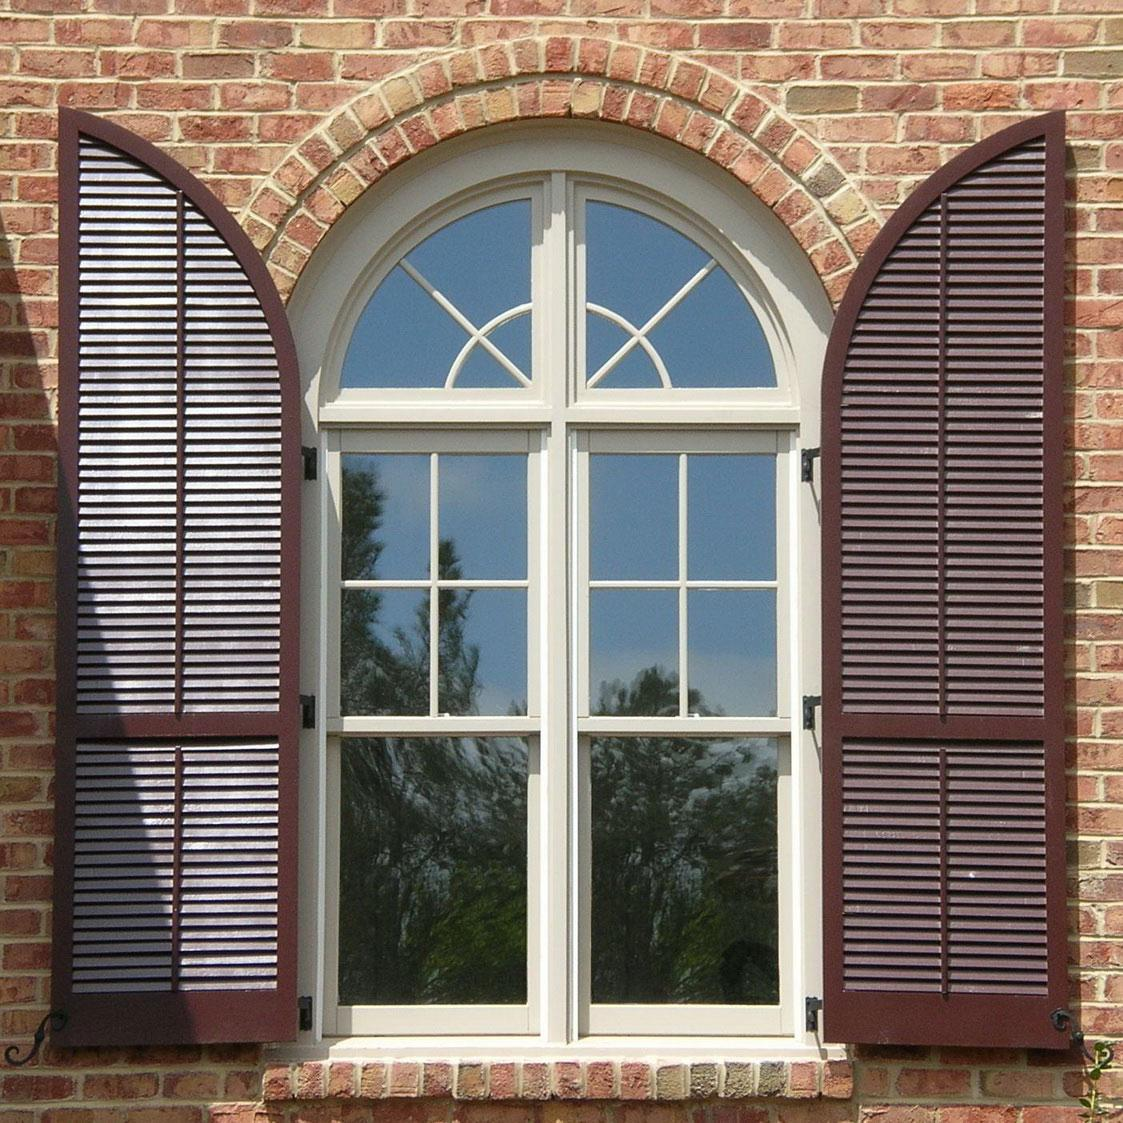 Stylish window shutters for window treatment ideas for Window shutters